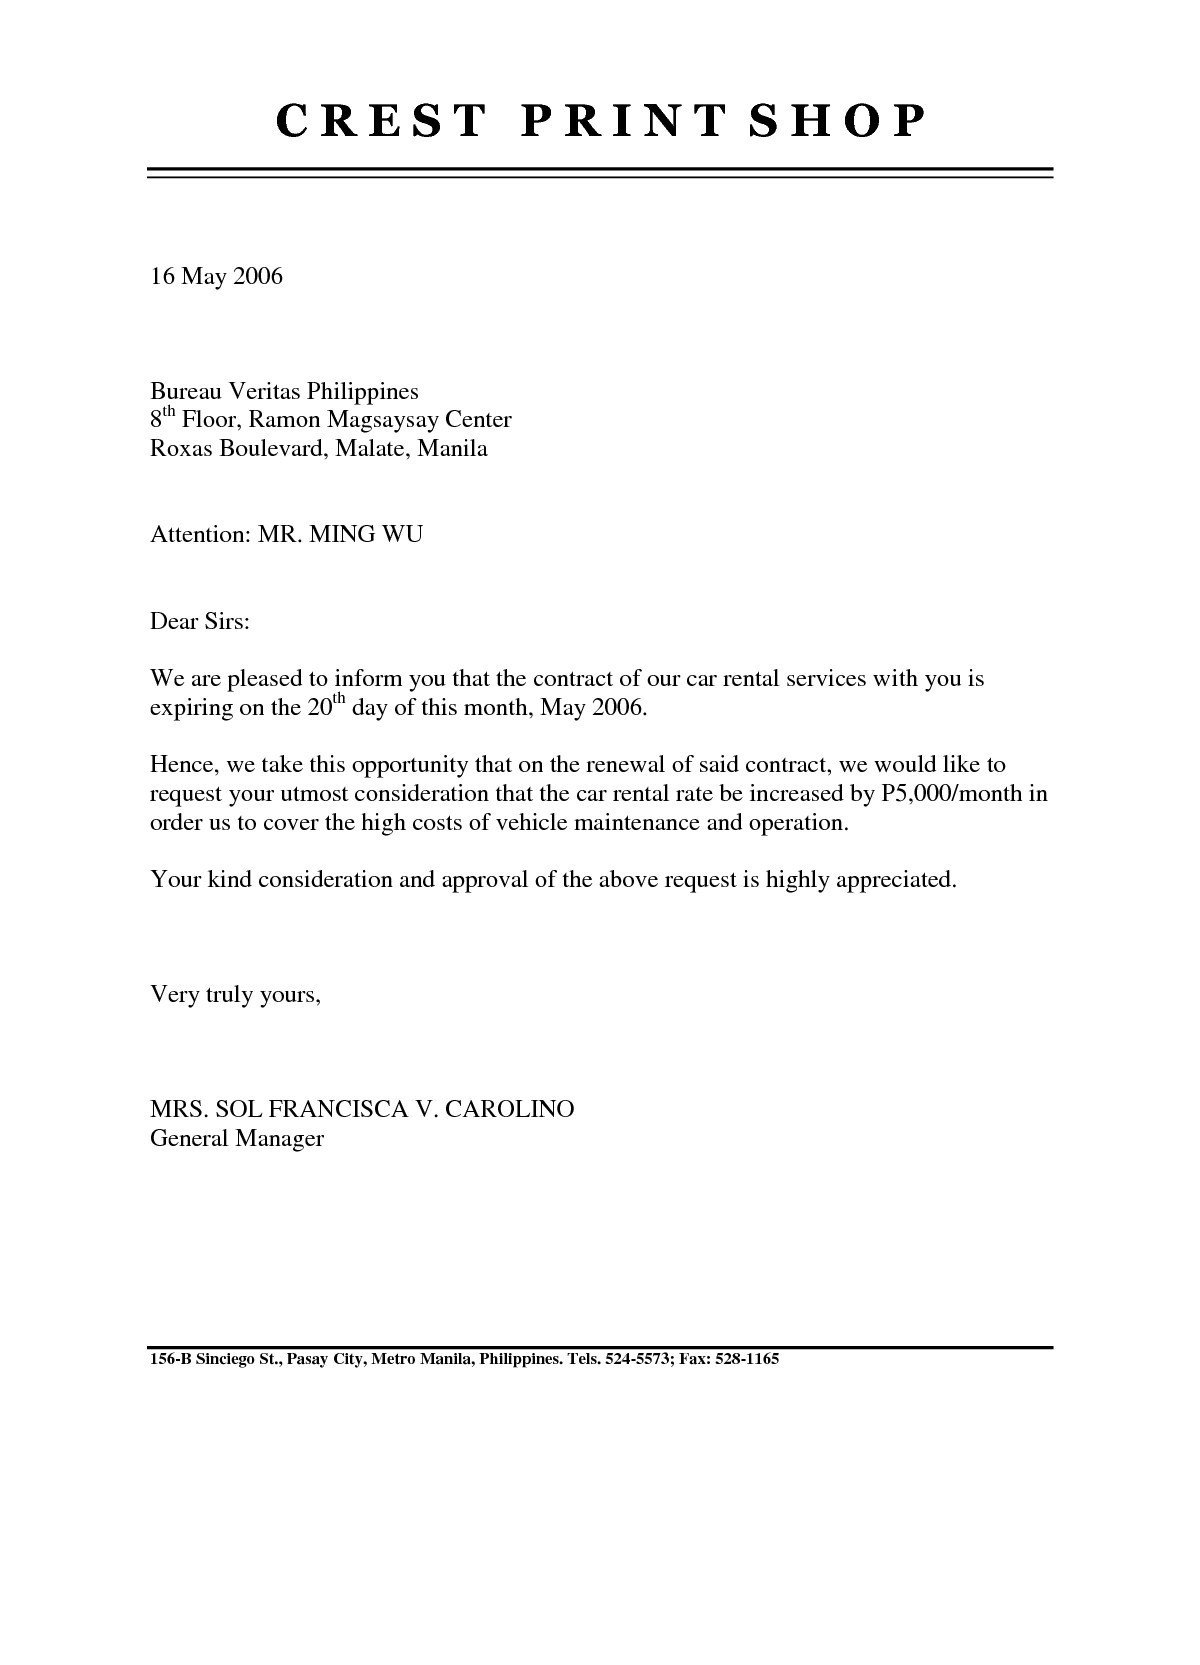 Lease Extension Letter Template - Tenancy Agreement Renewal Template Awesome Od Renewal Letter Sample